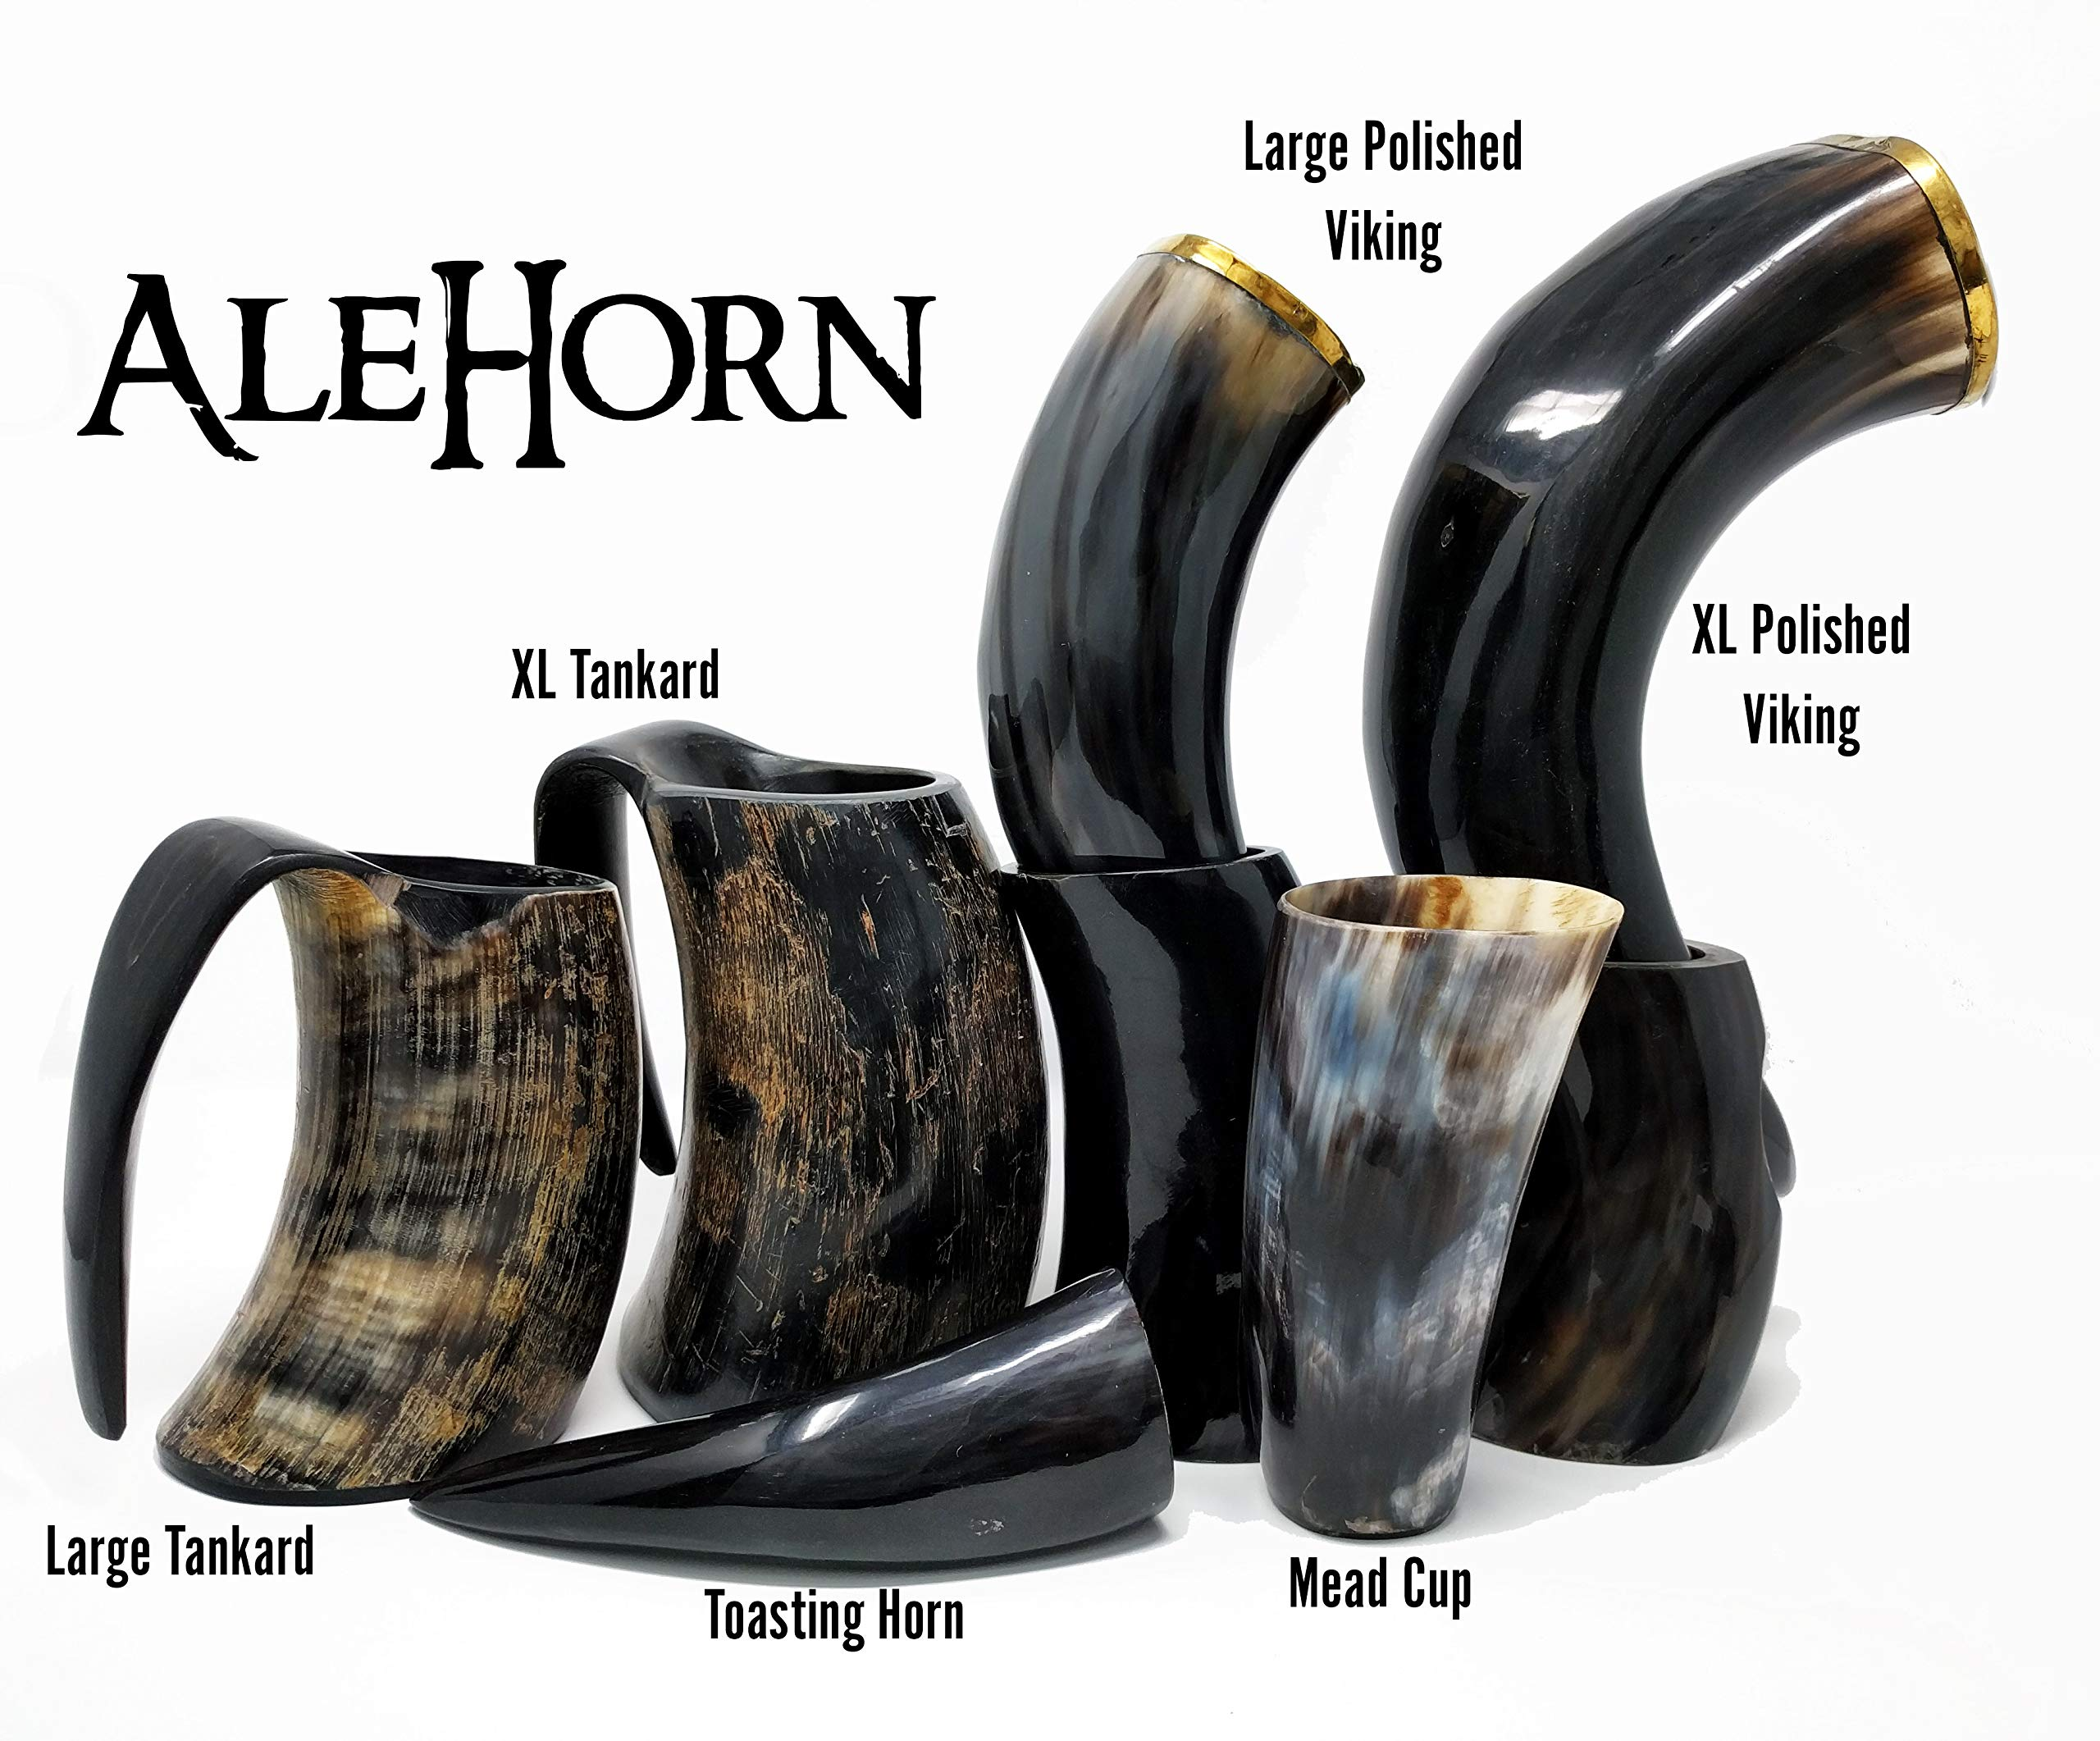 AleHorn – The Original Handcrafted Authentic Viking Drinking Horn for Beer, Mead, Ale – Medieval Inspired – Food Safe Vessel - Curved Style with Stand (20'' 4PK, Polished Horn) by AleHorn (Image #5)